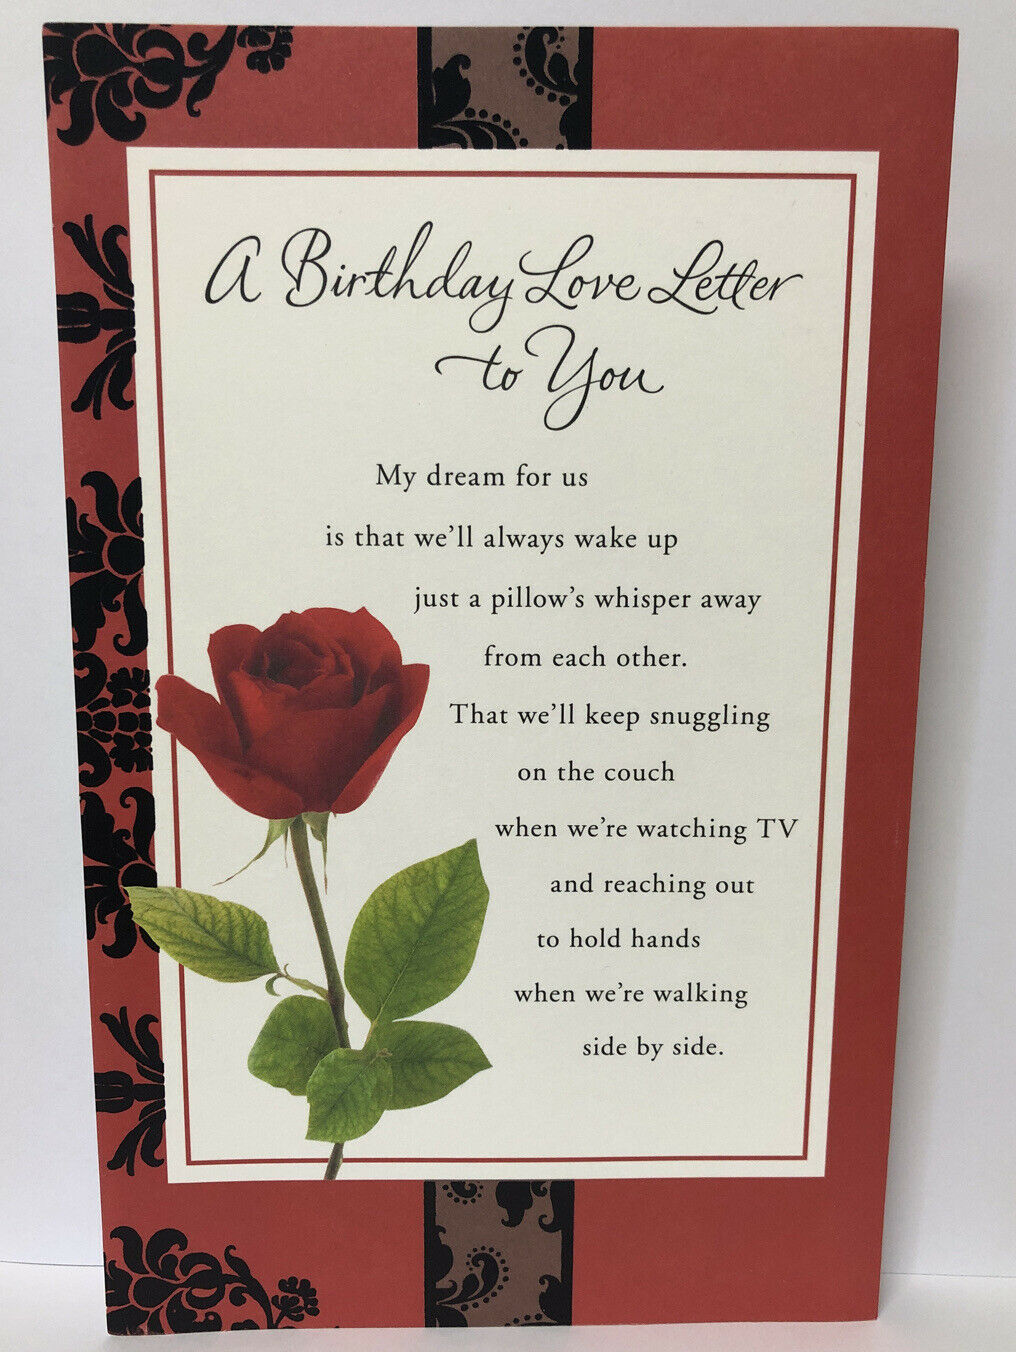 Happy Birthday Love Letter Relationship American Greetings Card